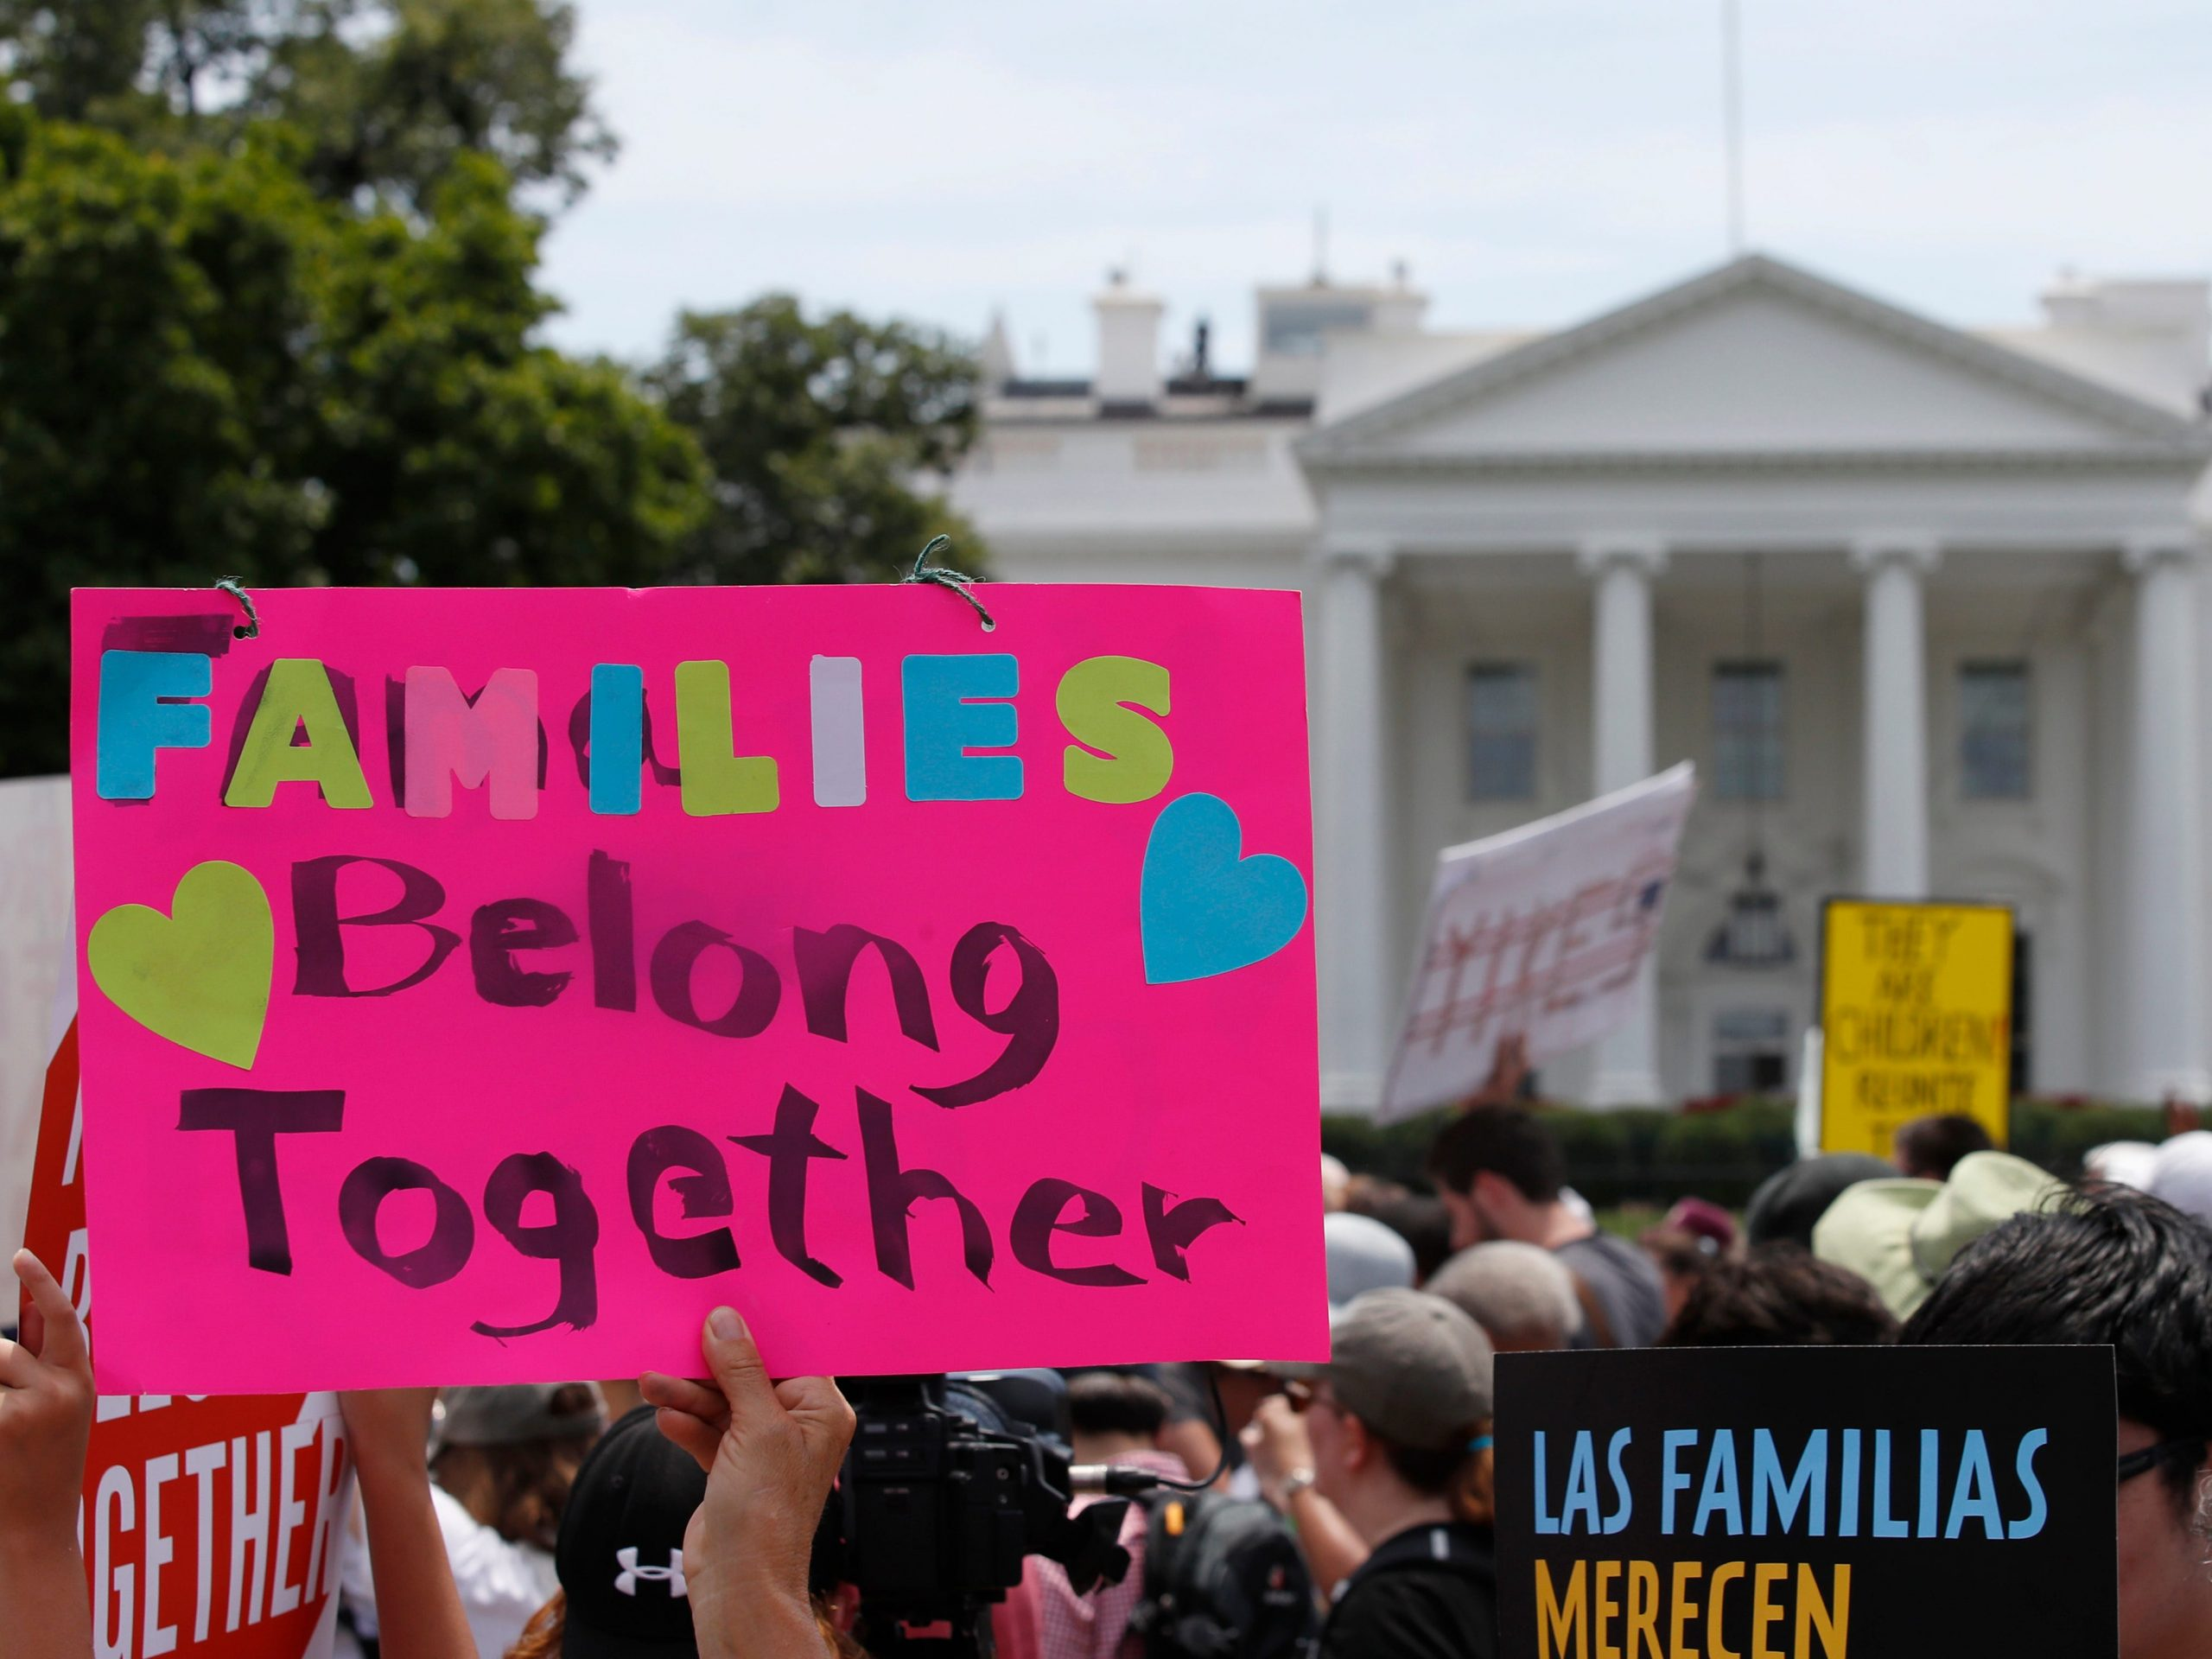 The White Dwelling is anticipated to position a refugee advocate accountable of reuniting separated migrant households, per picture